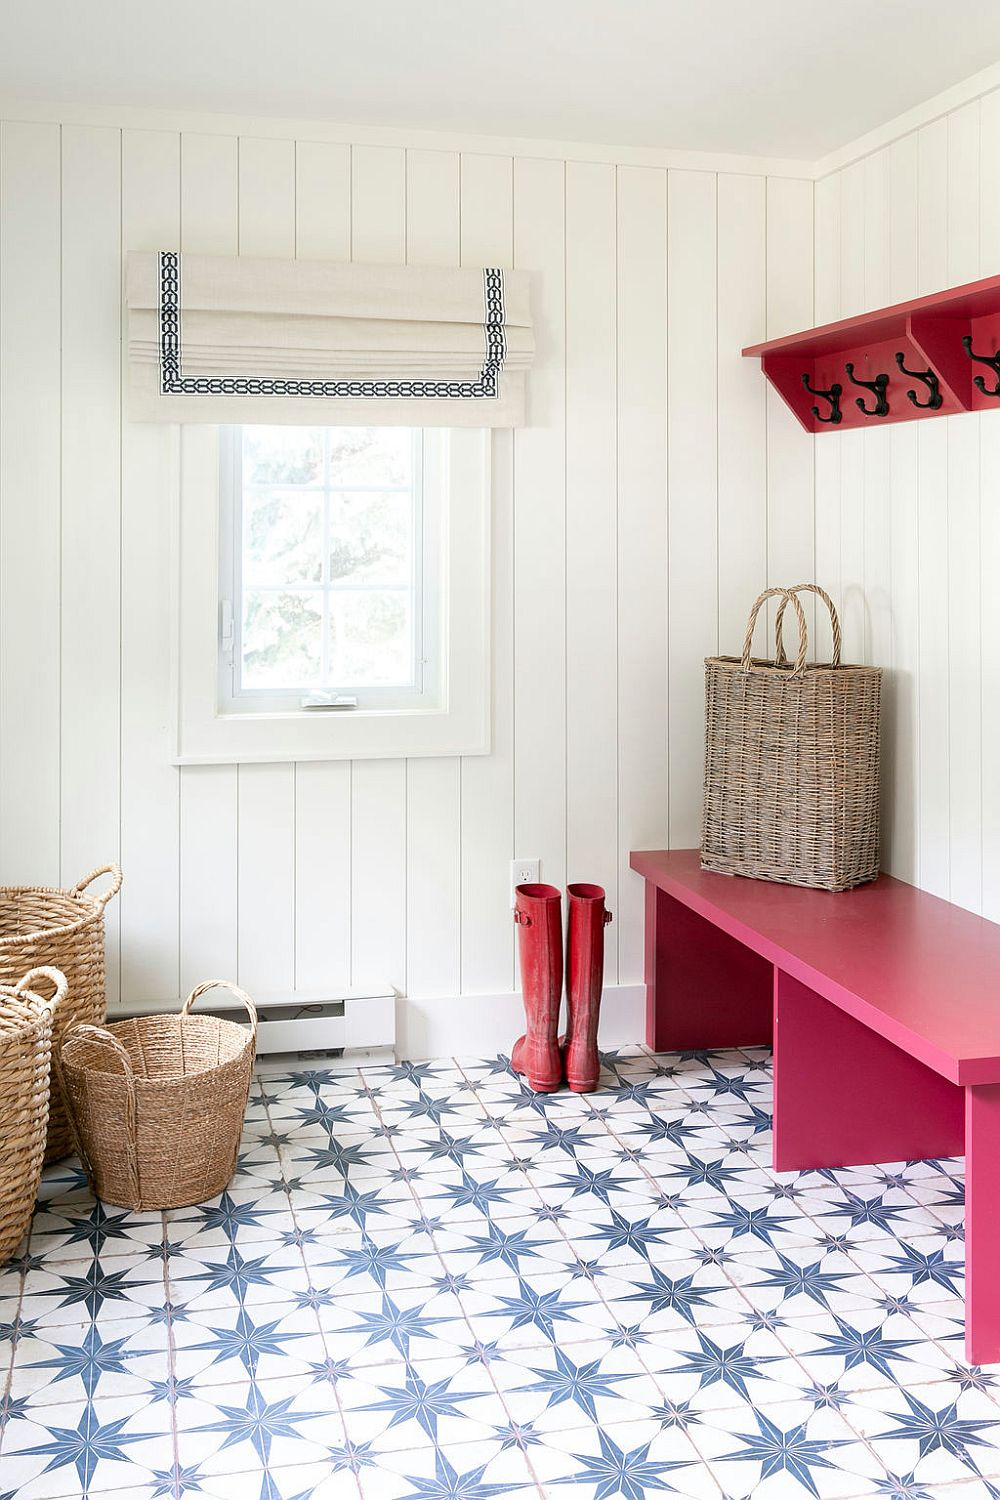 White mudroom with beach and cottage styles features patterned floor tiles and bright pink bench